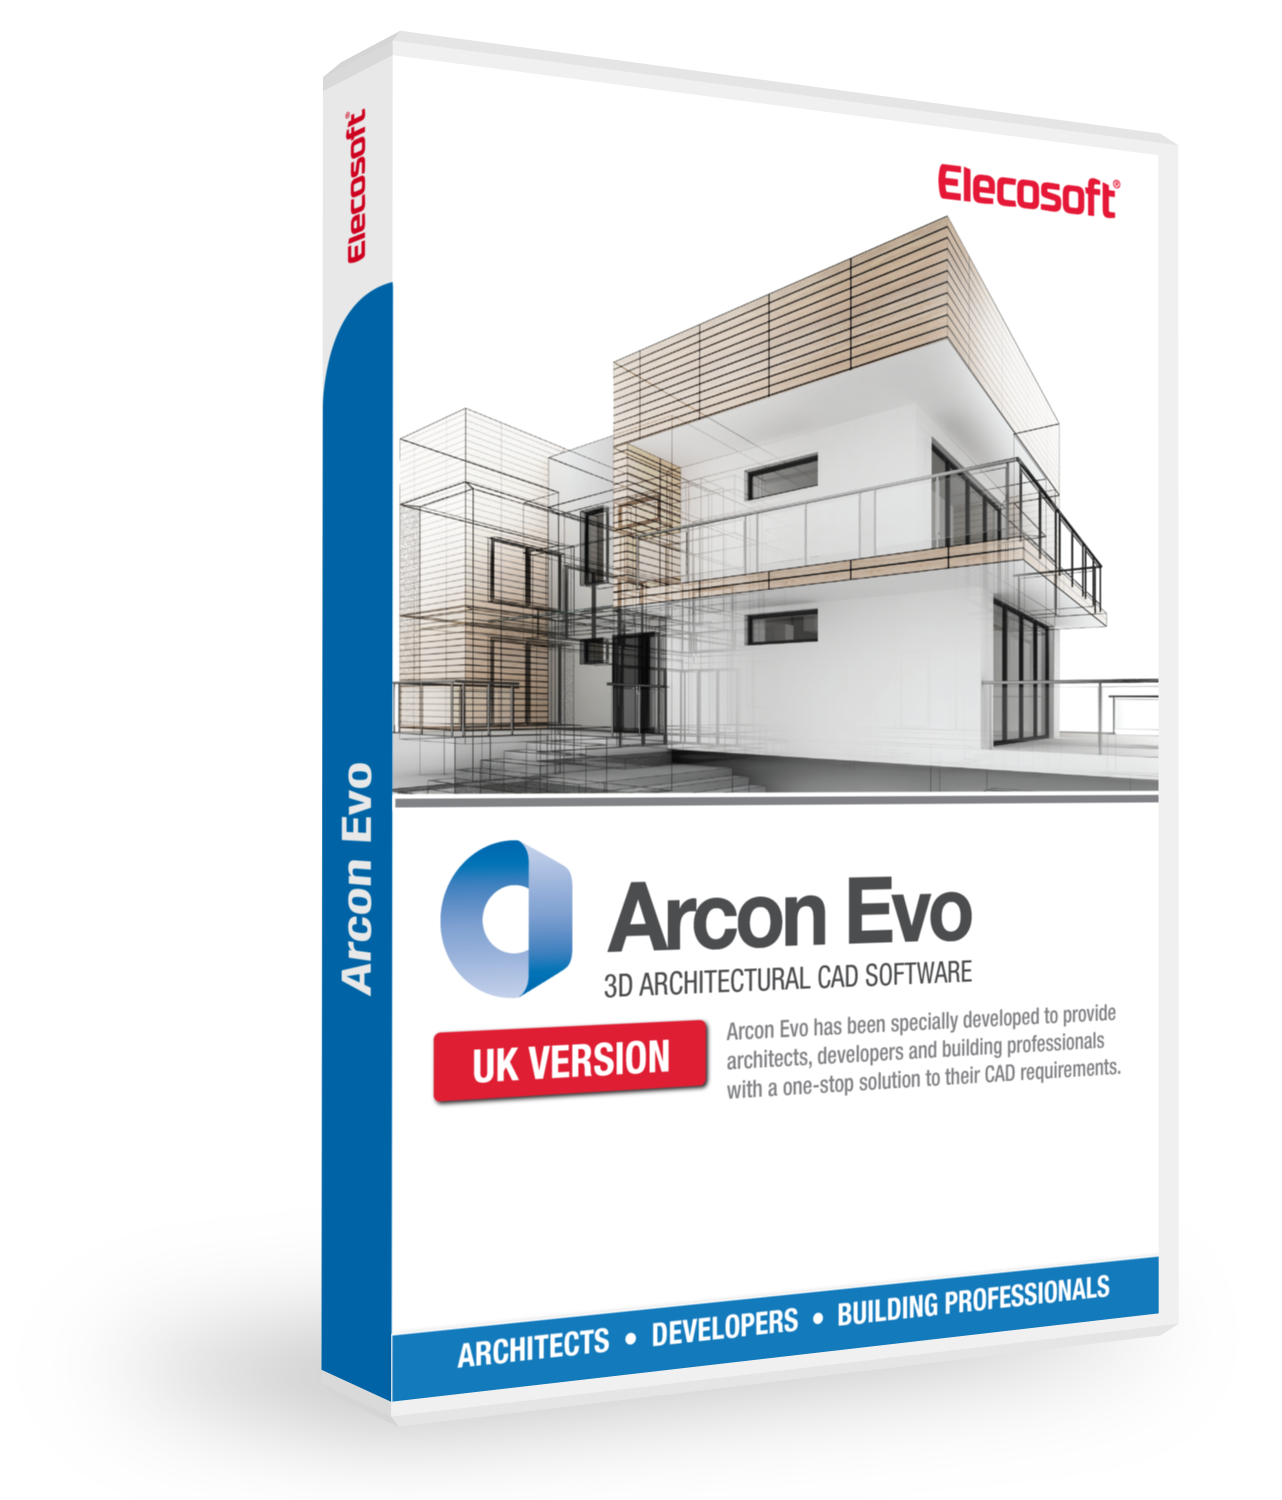 Architectural CAD Software For Architects